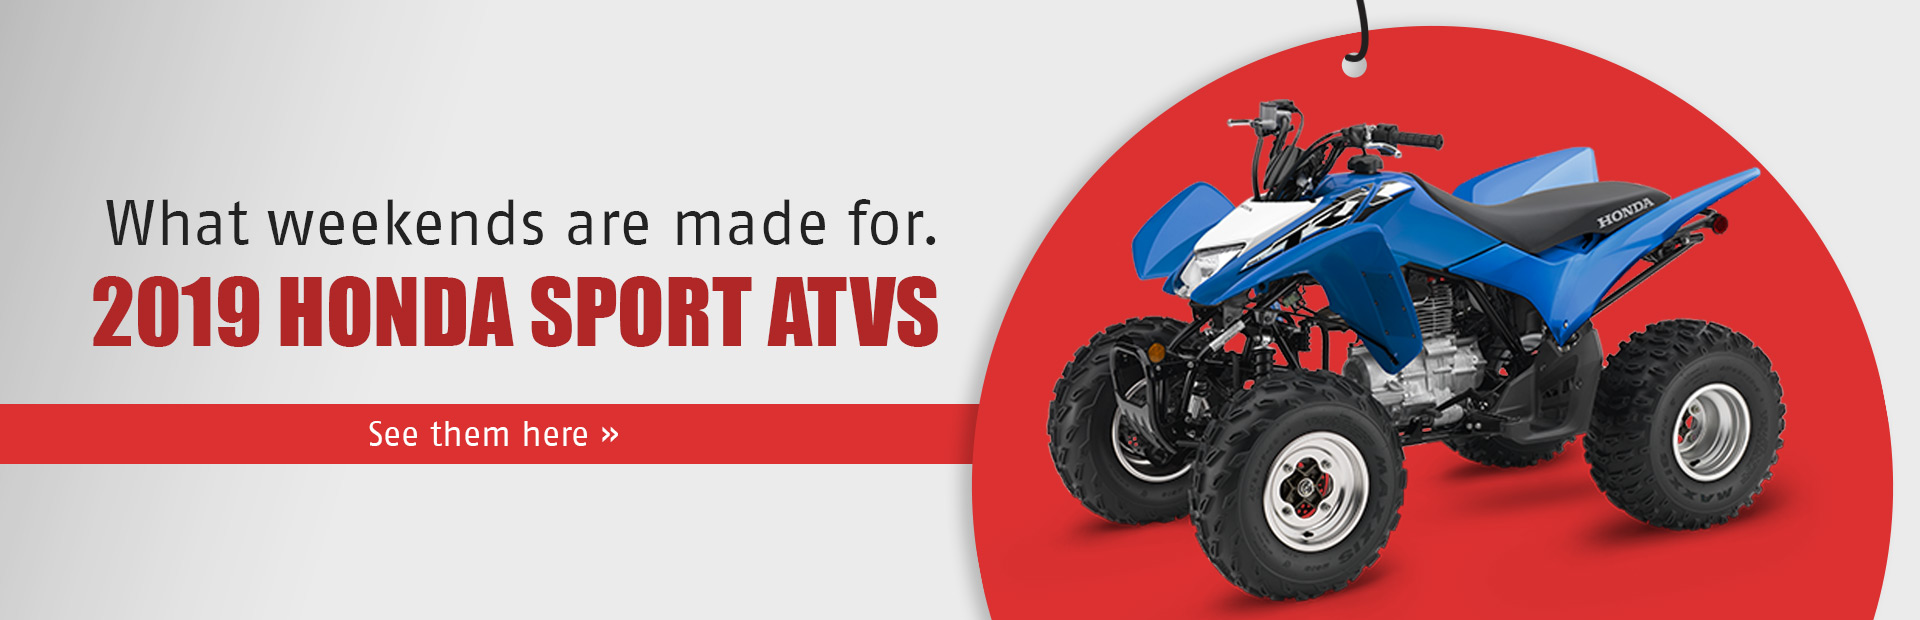 2019 Honda Sport ATVs: Click here to view the models.